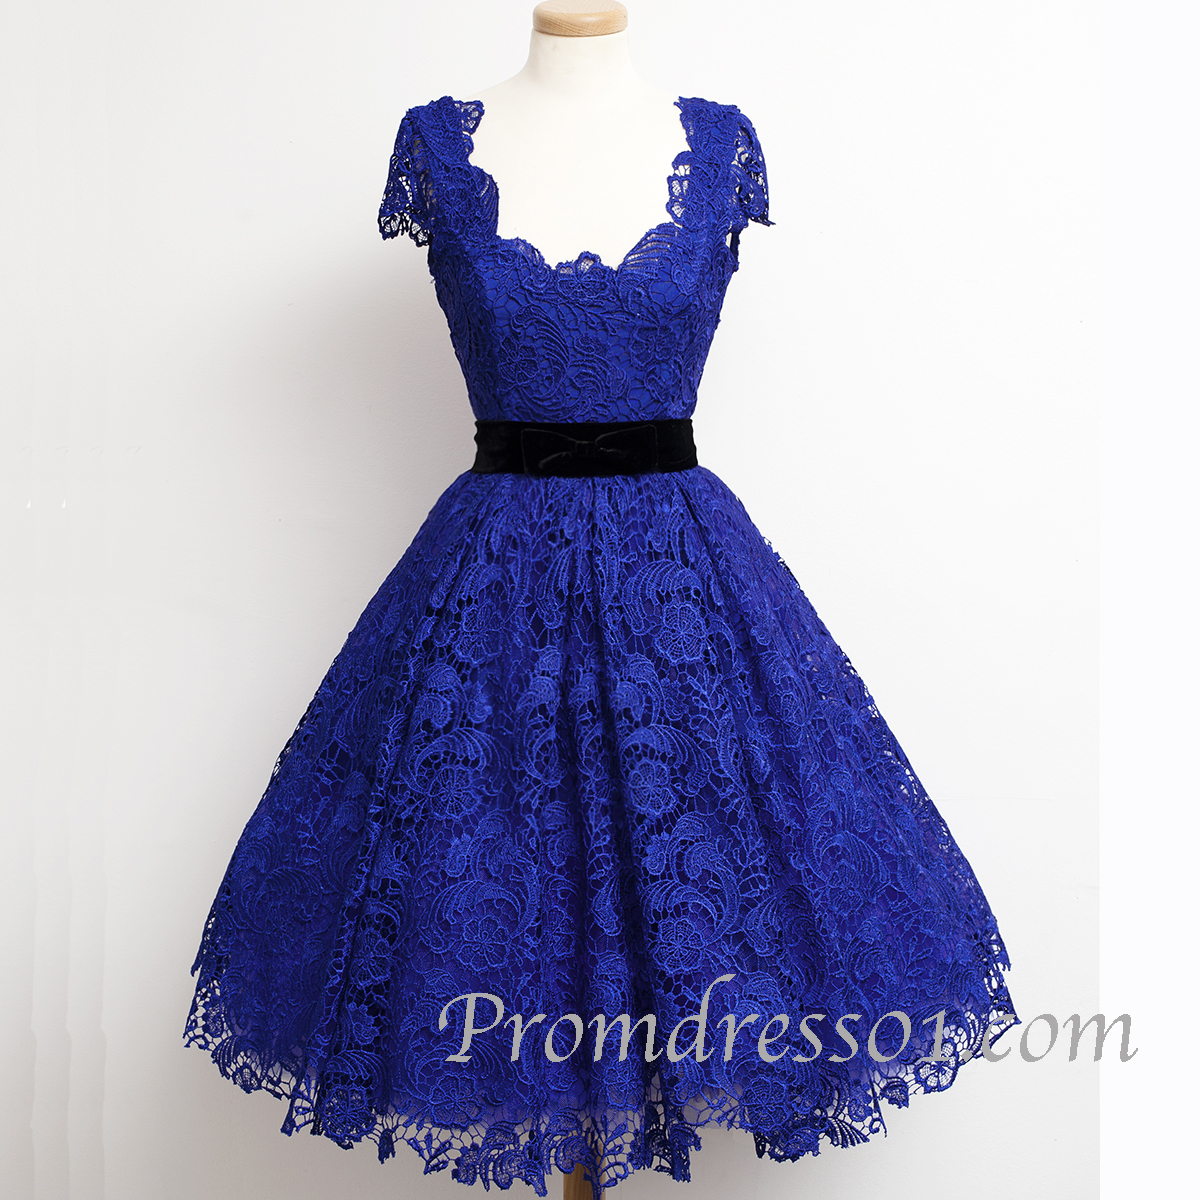 Vintage dresses by Promdress01.com